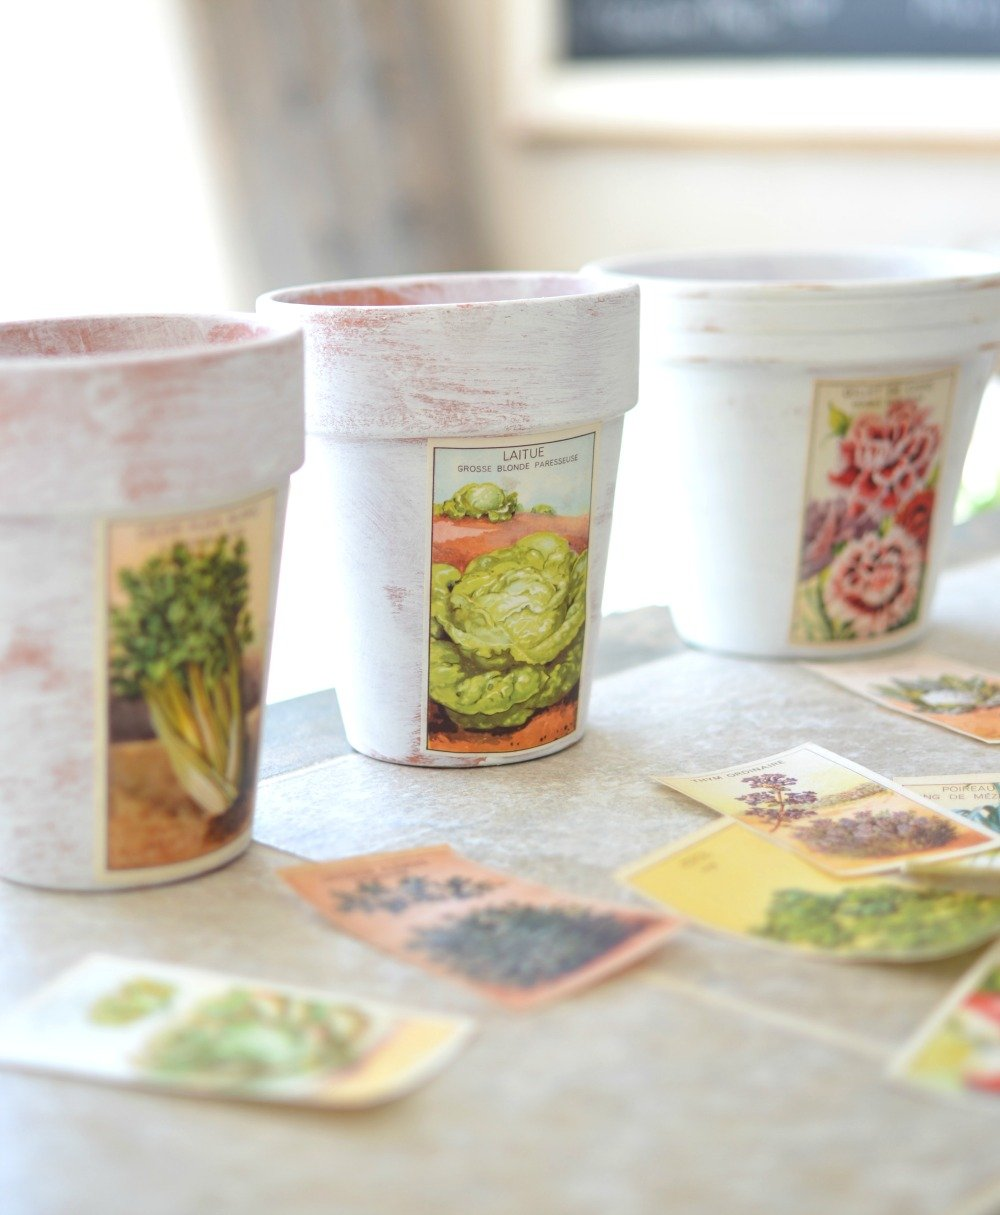 DIY Painted Pots with Vintage French Labels